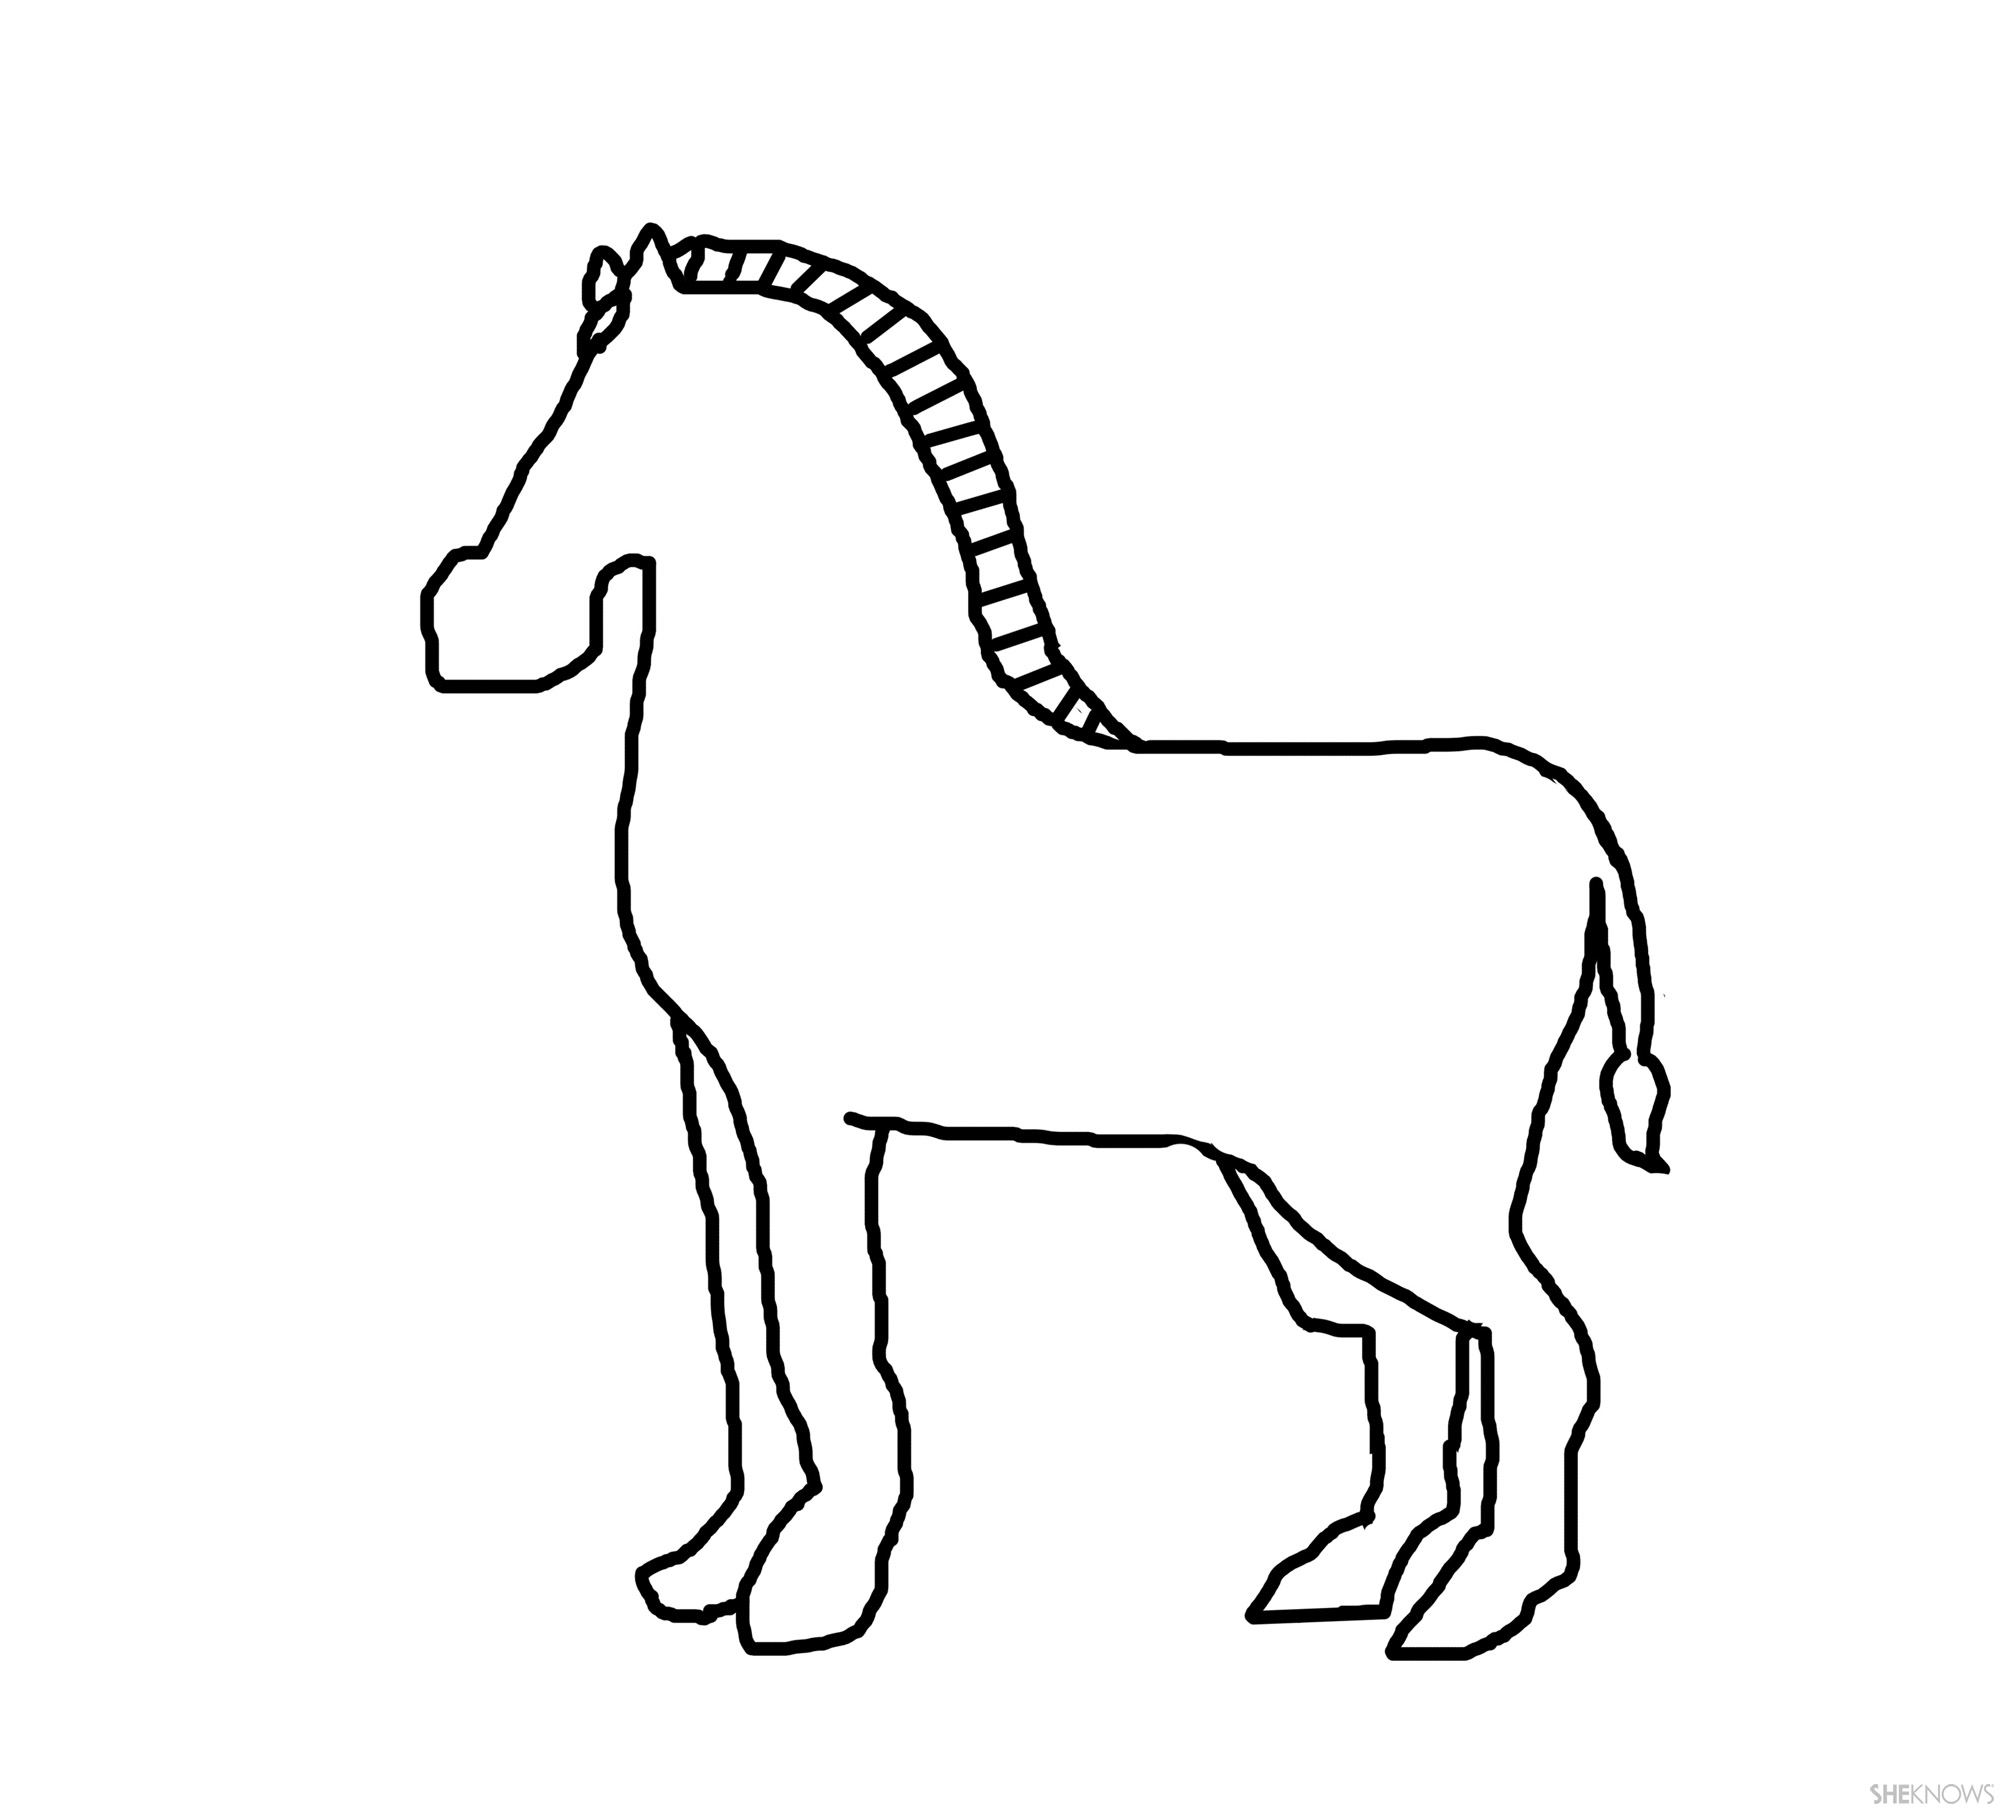 zebra coloring pages without stripes - photo #32